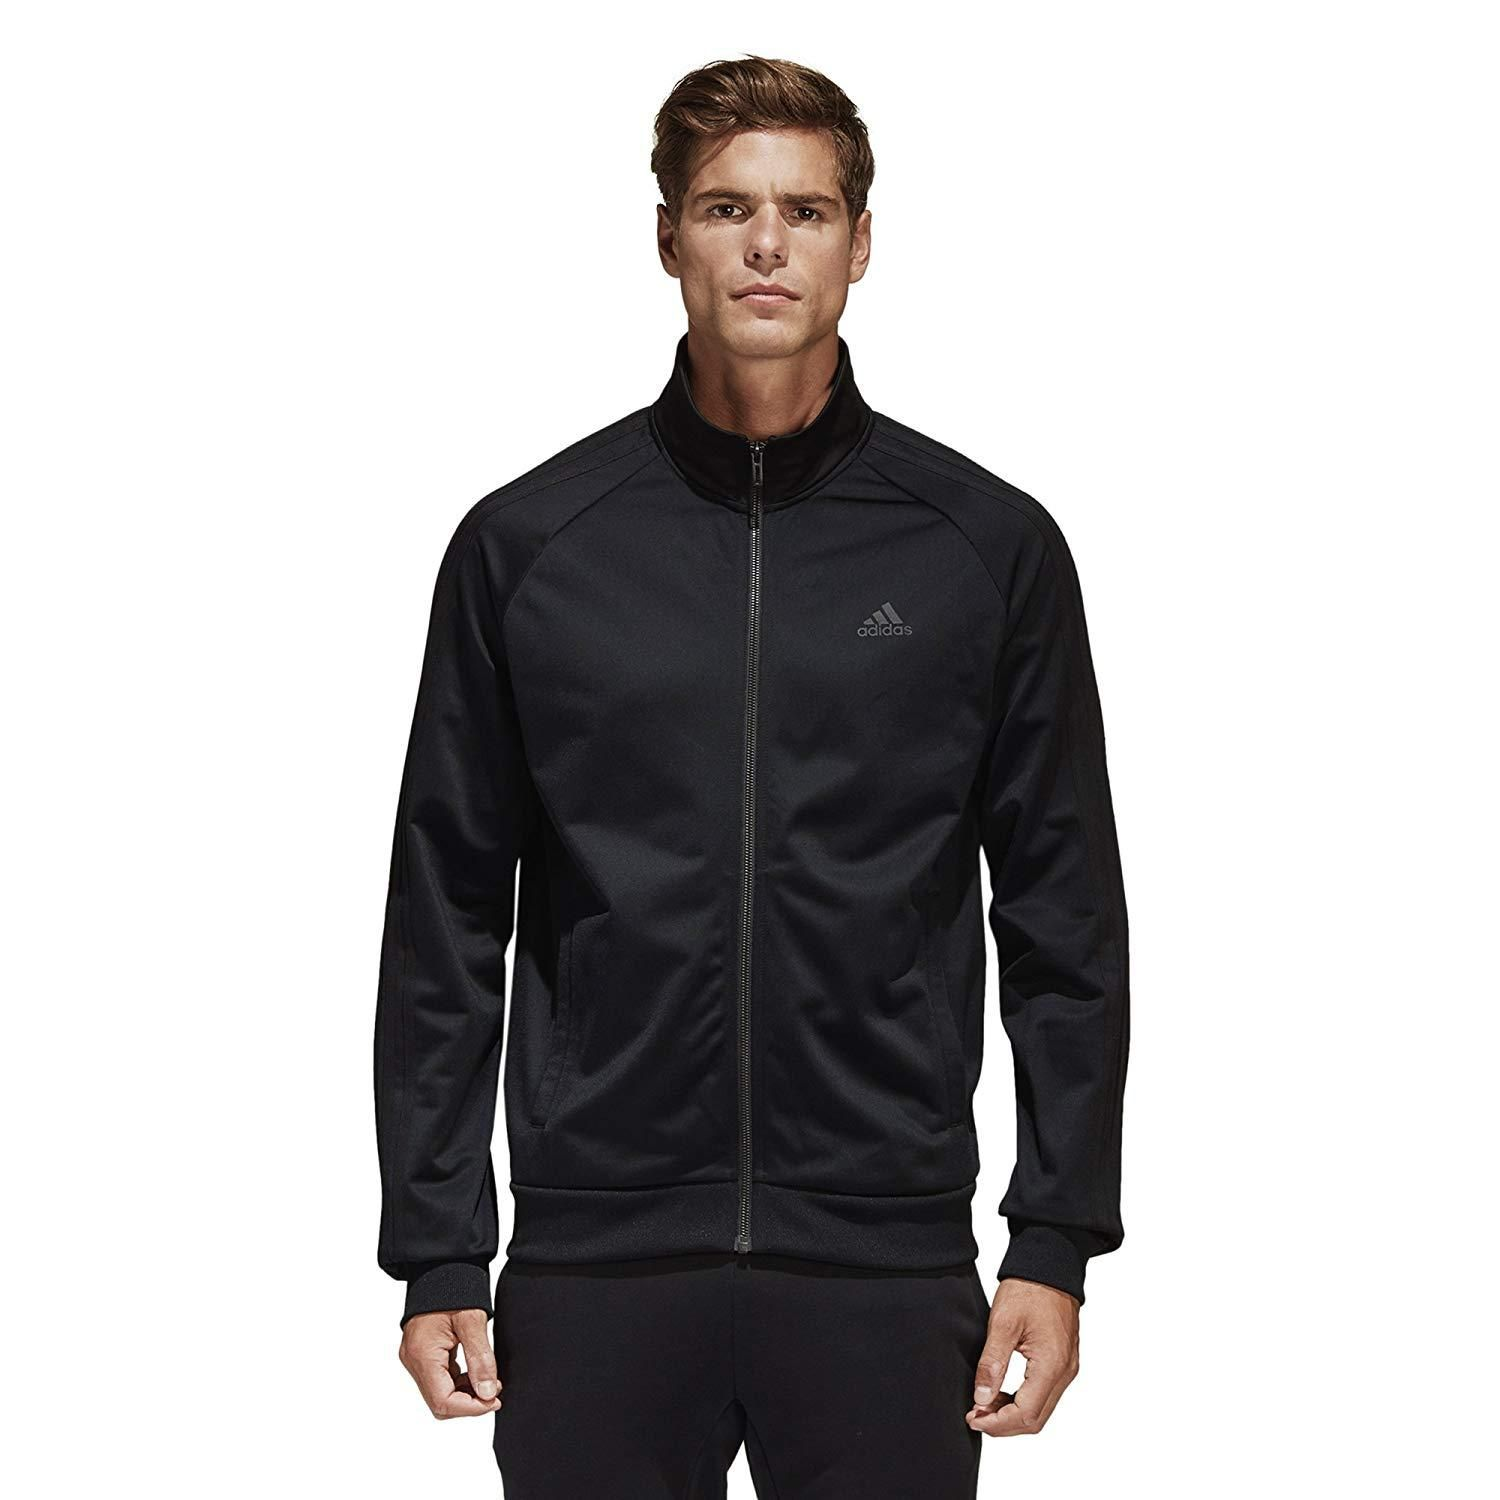 Shopping Special: Adidas Men's Essential Tricot Track Jacket